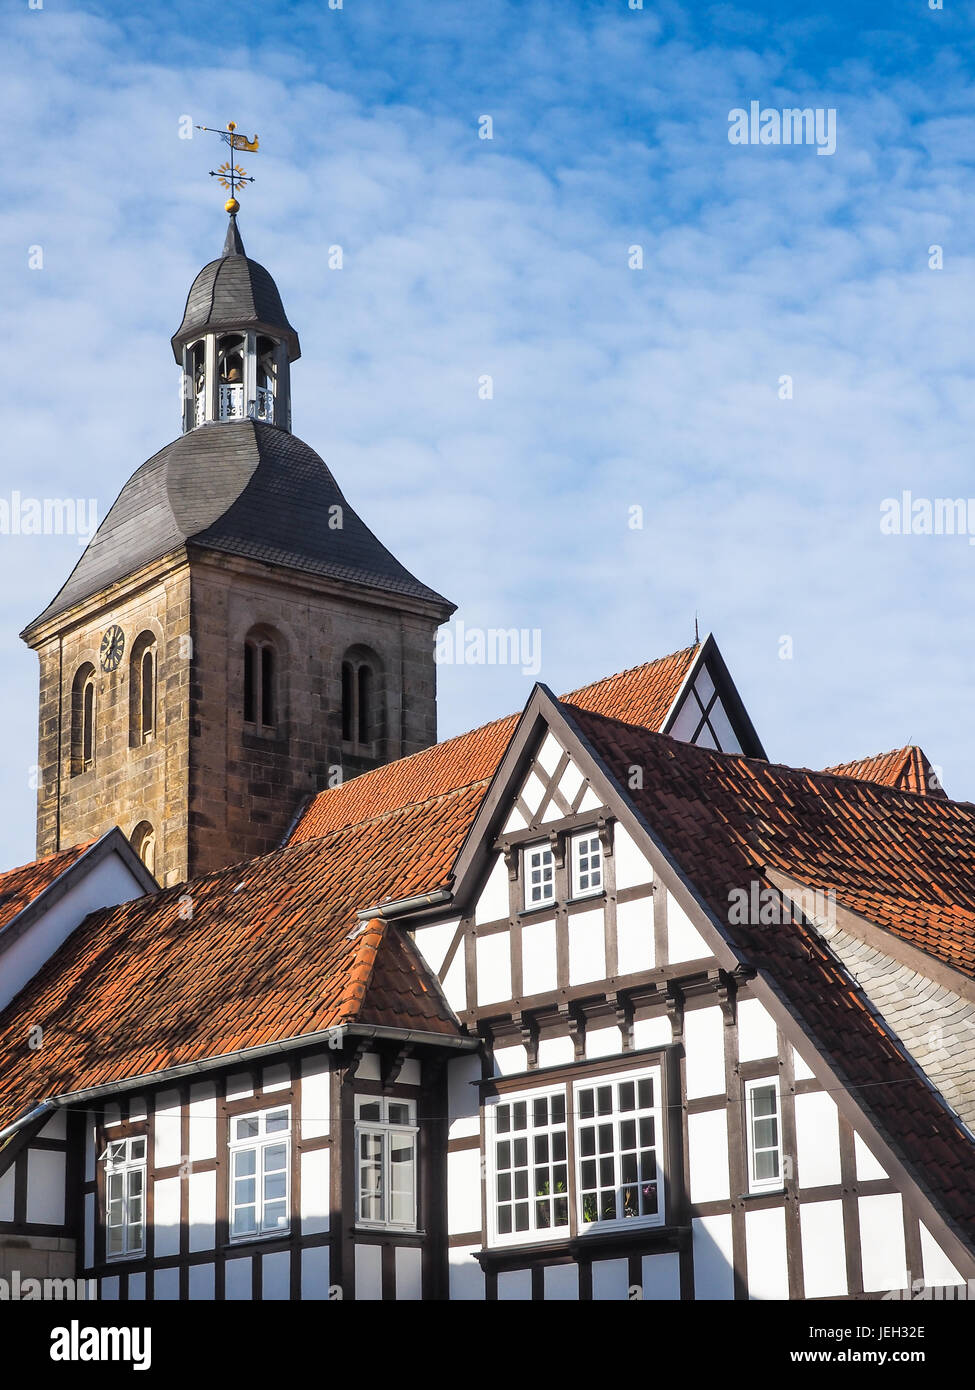 City Tecklenburg with church and half-timbered houses, Germany - Stock Image